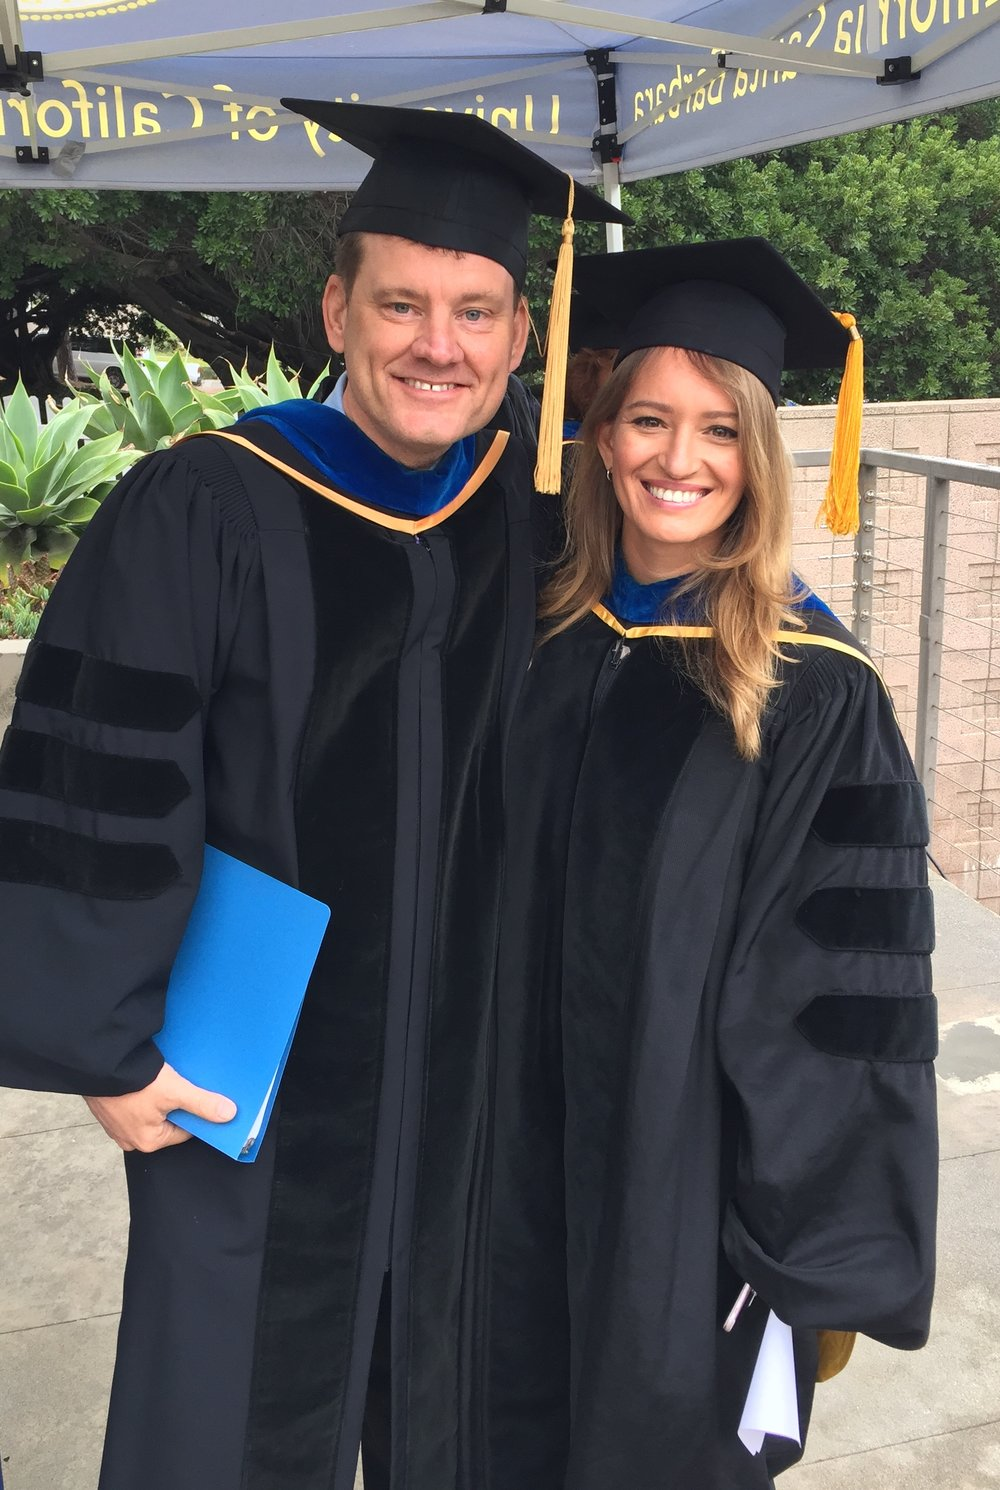 Humanities and Fine Arts Dean John Majewski, left, with Commencement 2018 speaker Katy Tur, a news anchor at MSNBC and a 2005 UC Santa Barbara philosophy alum.